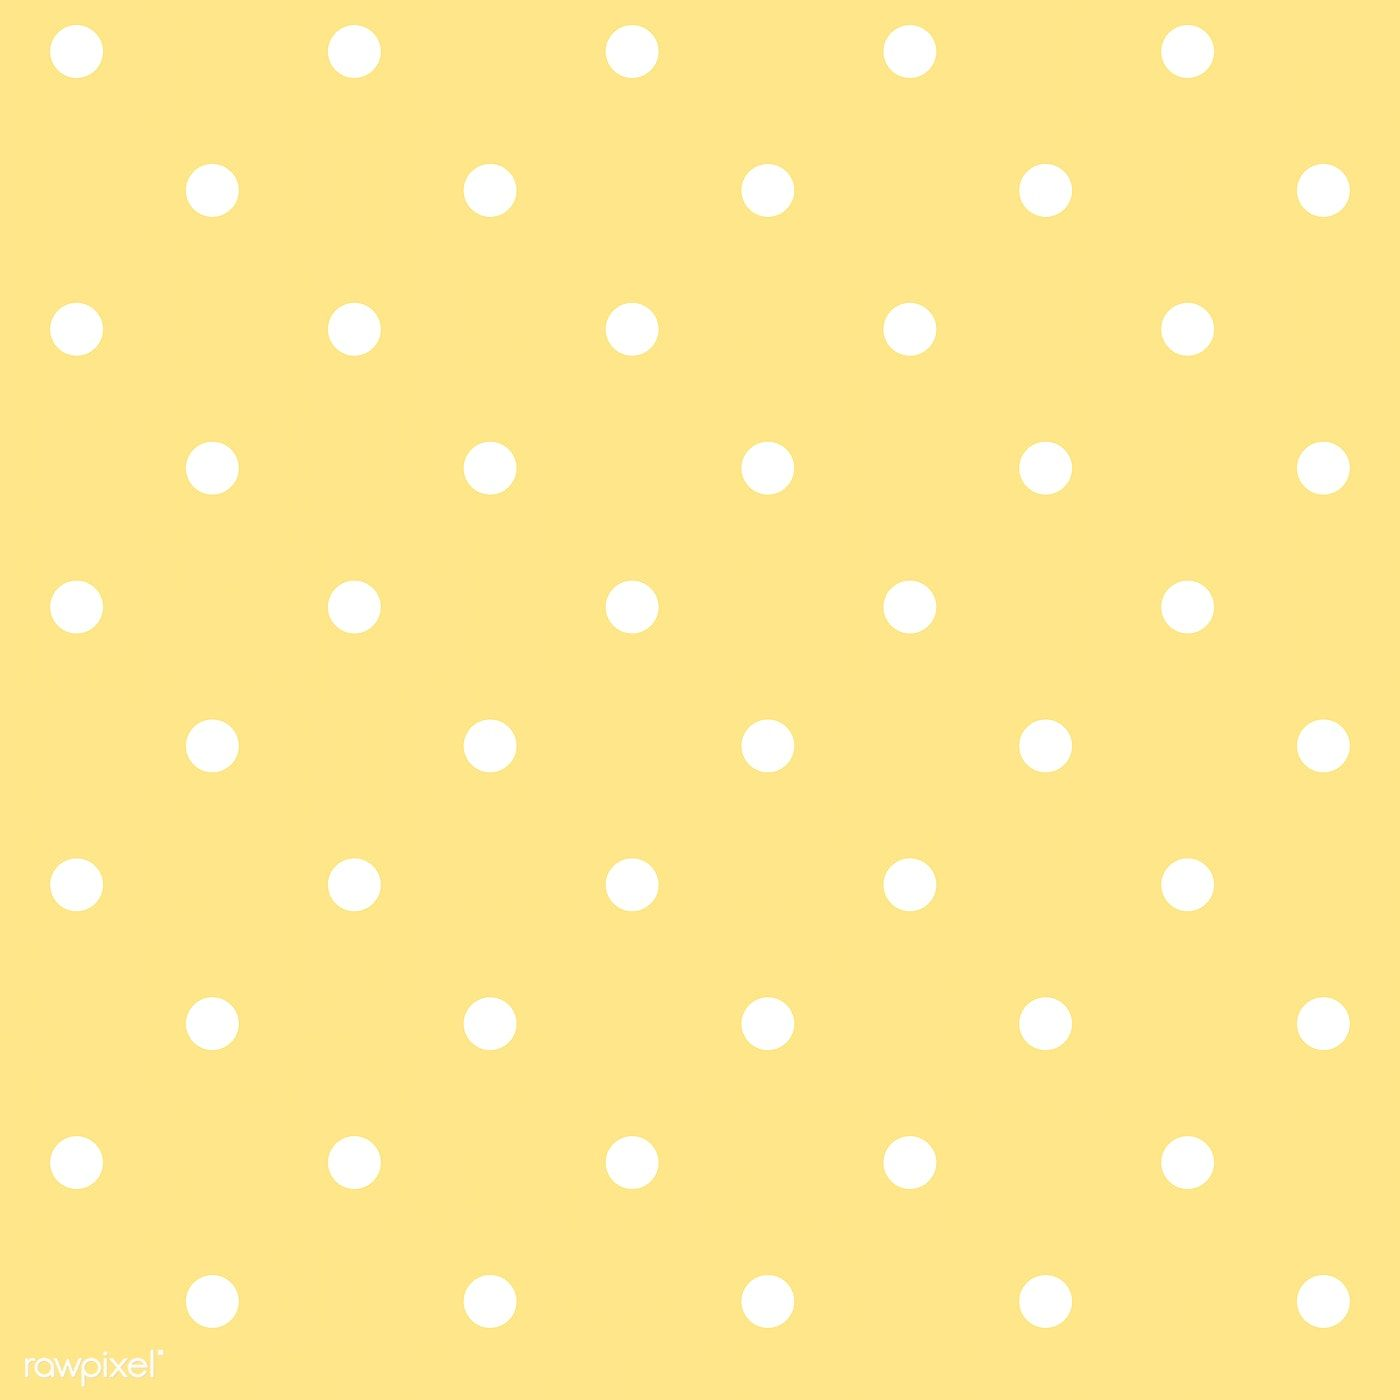 Yellow And White Seamless Polka Dot Pattern Vector Free Image By Rawpixel Com Filmful Polka Dots Wallpaper Dot Pattern Vector Polka Dot Pattern